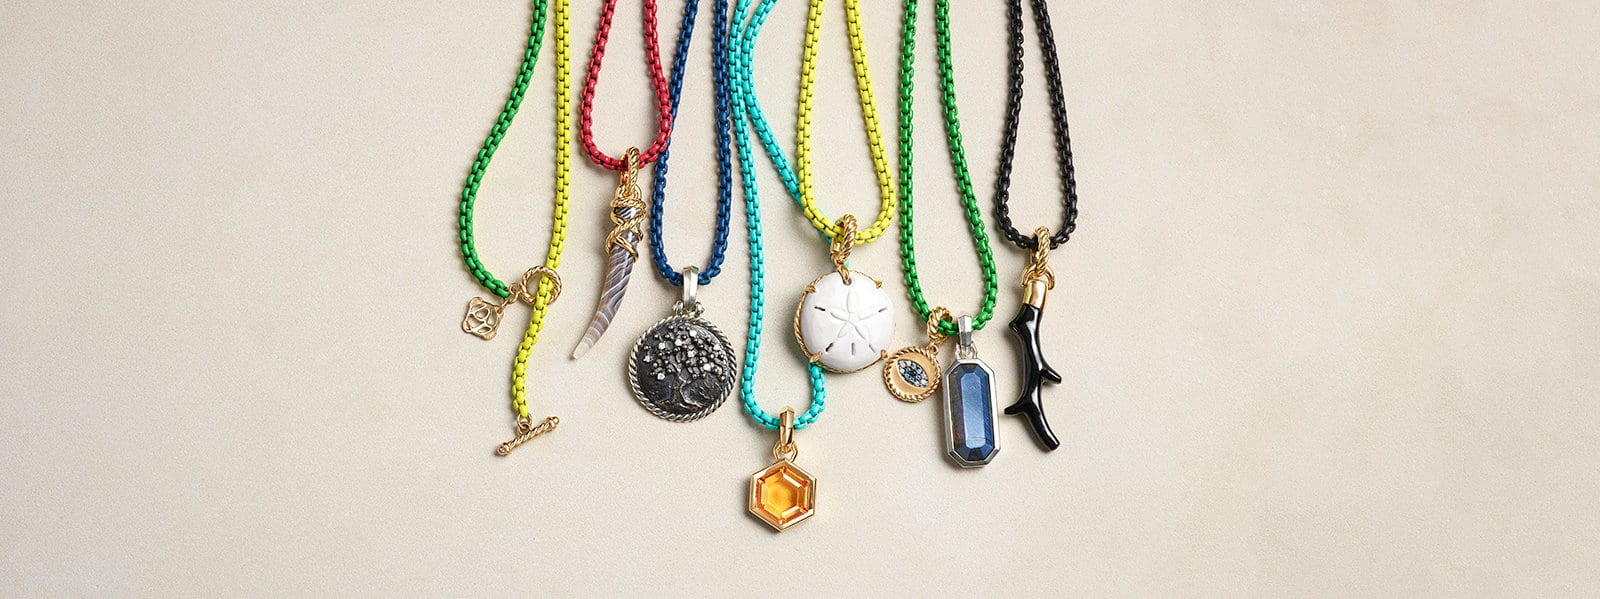 DY Bel Aire chains a variety of colors with multiple amulets set with colored gemstones.